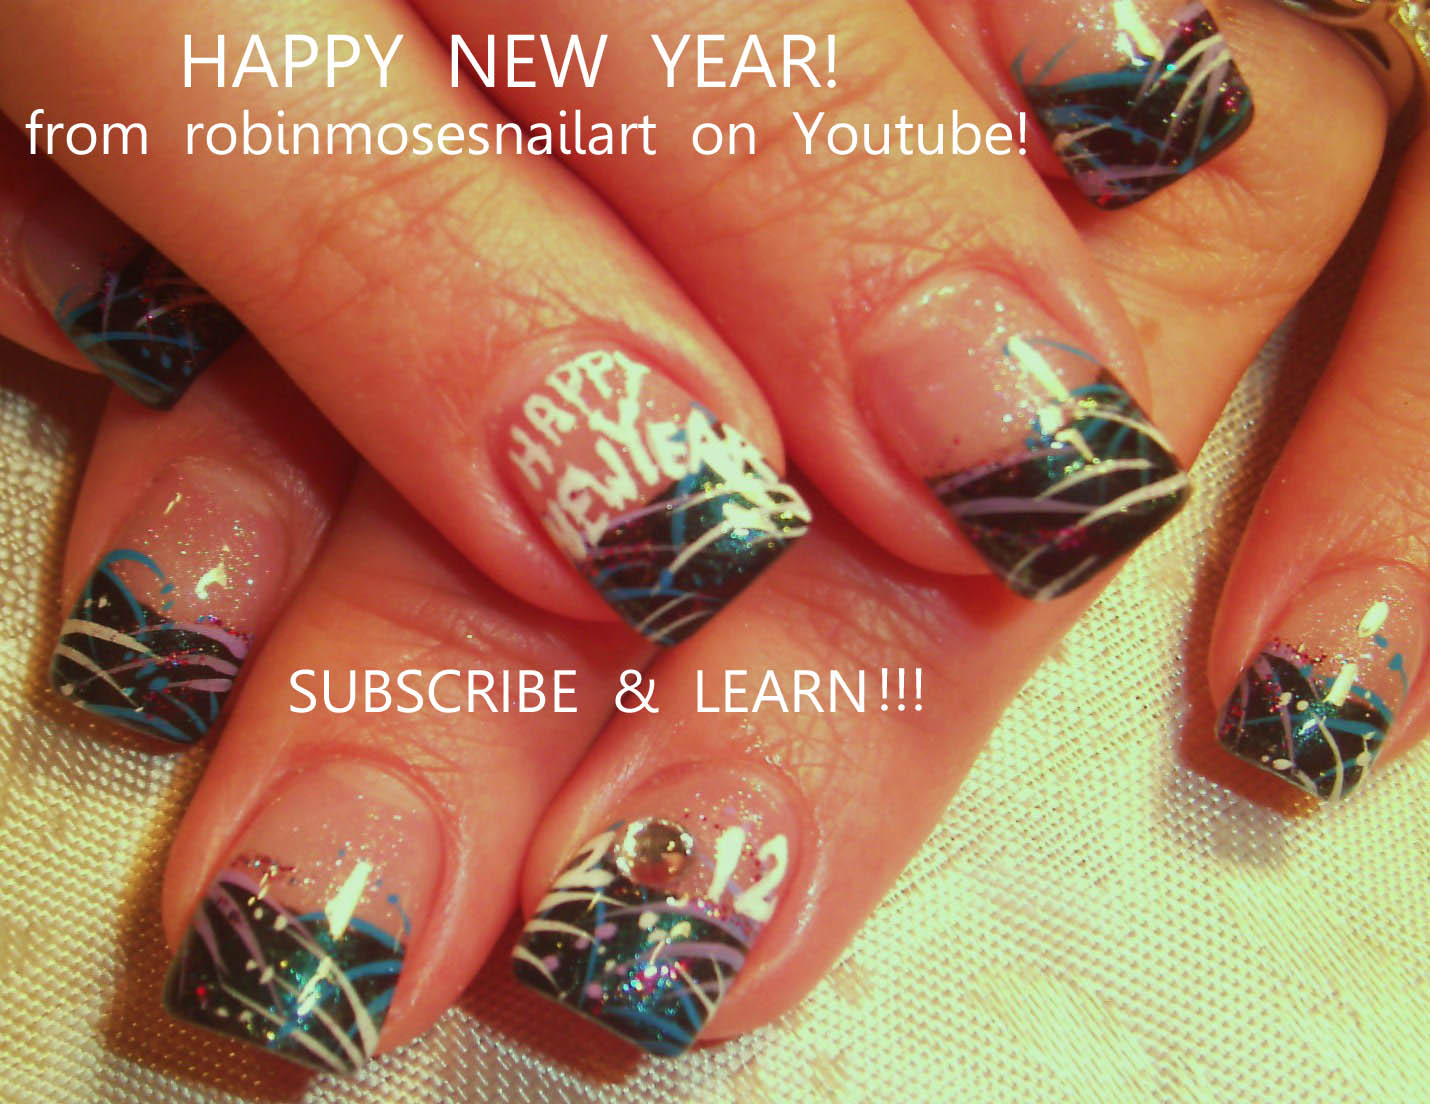 Robin moses nail art new york nails new year 2012 new year new york nails for new years eve 2012 robin moses original party girl nail art design tutorial 558 prinsesfo Image collections